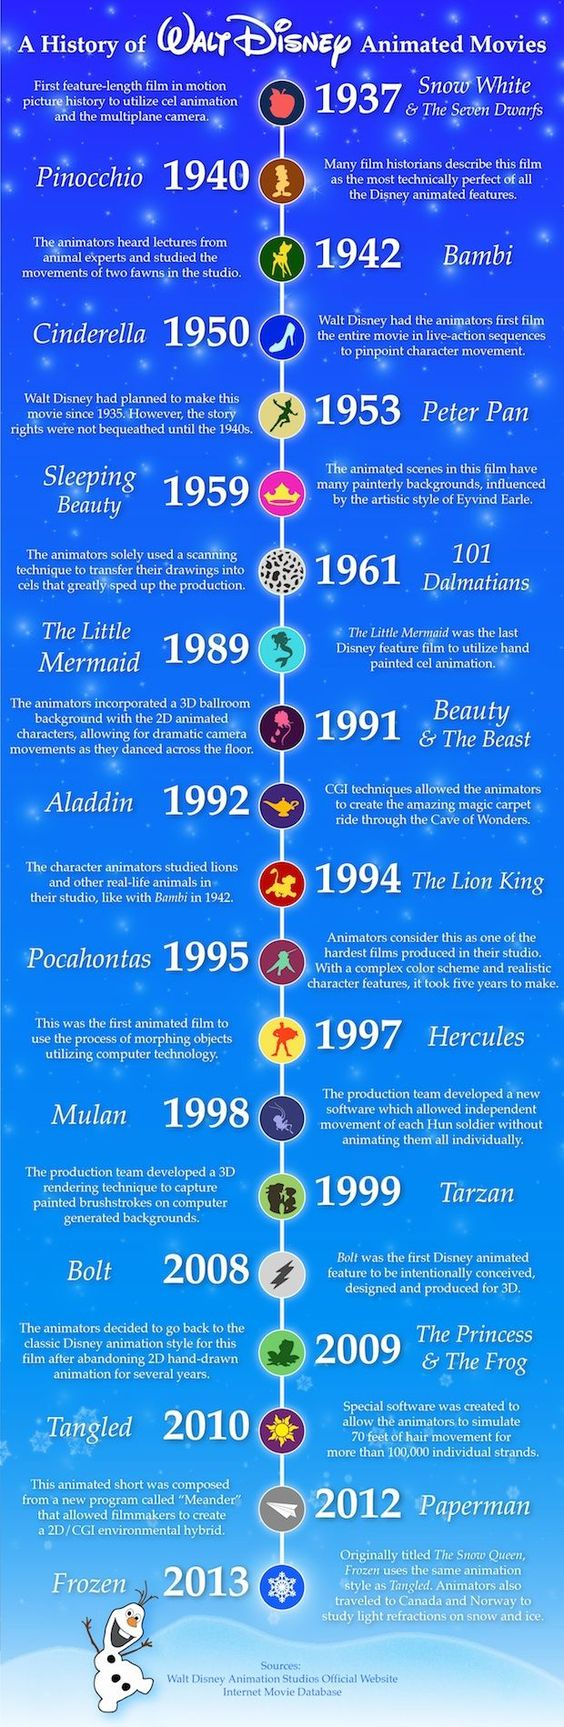 Funny pictures of the day (72 pics) - History Of Walt Disney Animated Movies